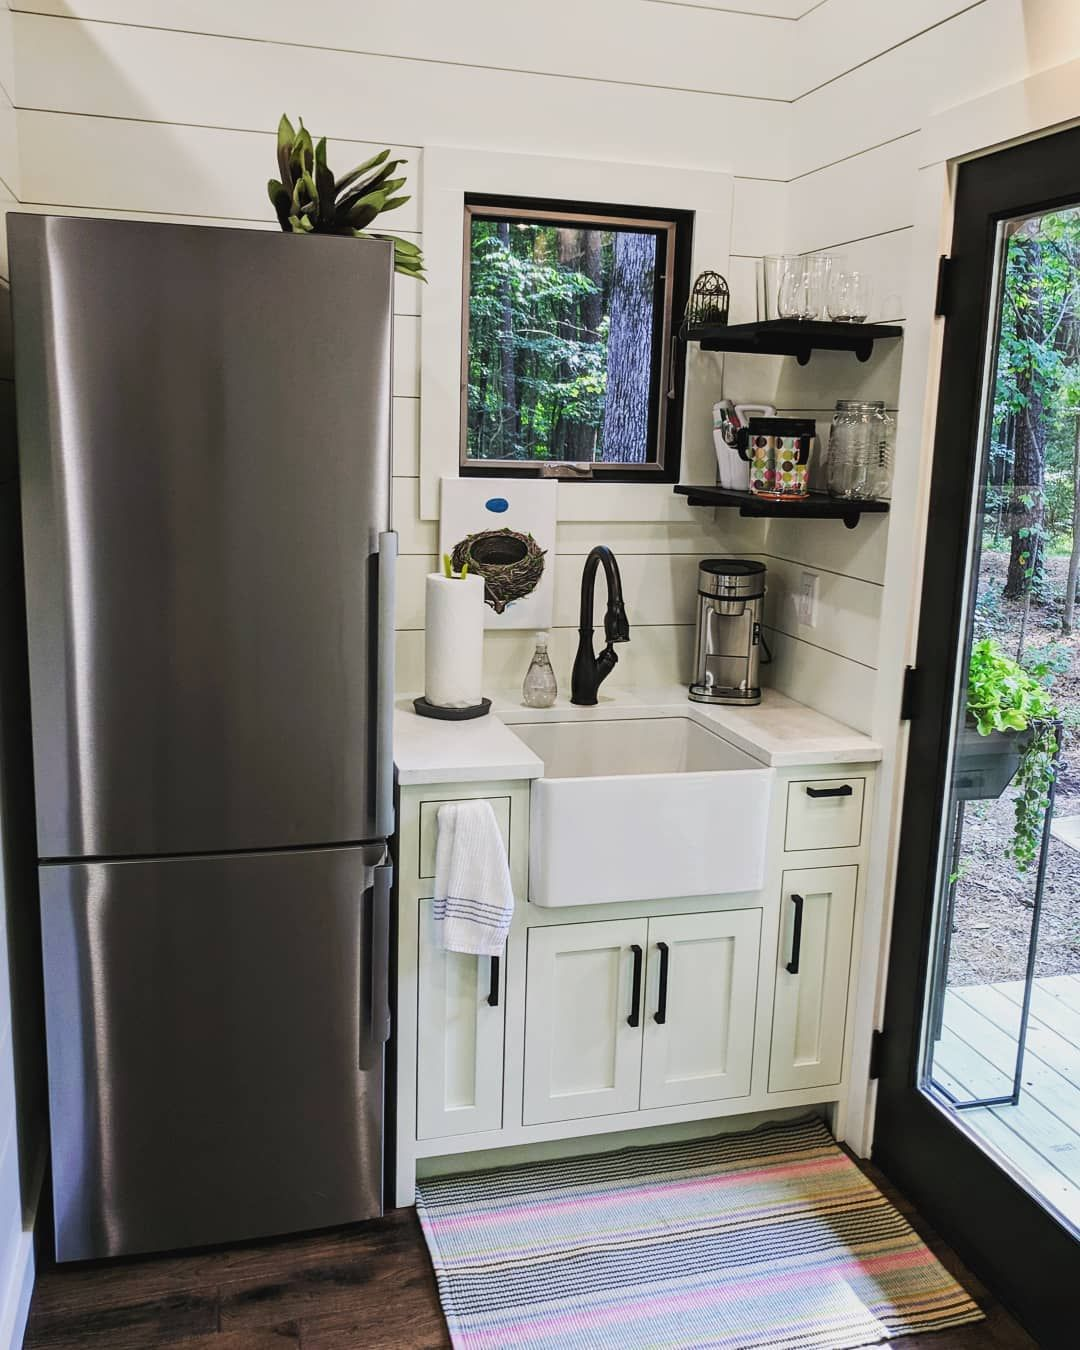 Timbercraft Tiny Homes On Instagram Even A Tiny Kitchen Can Have